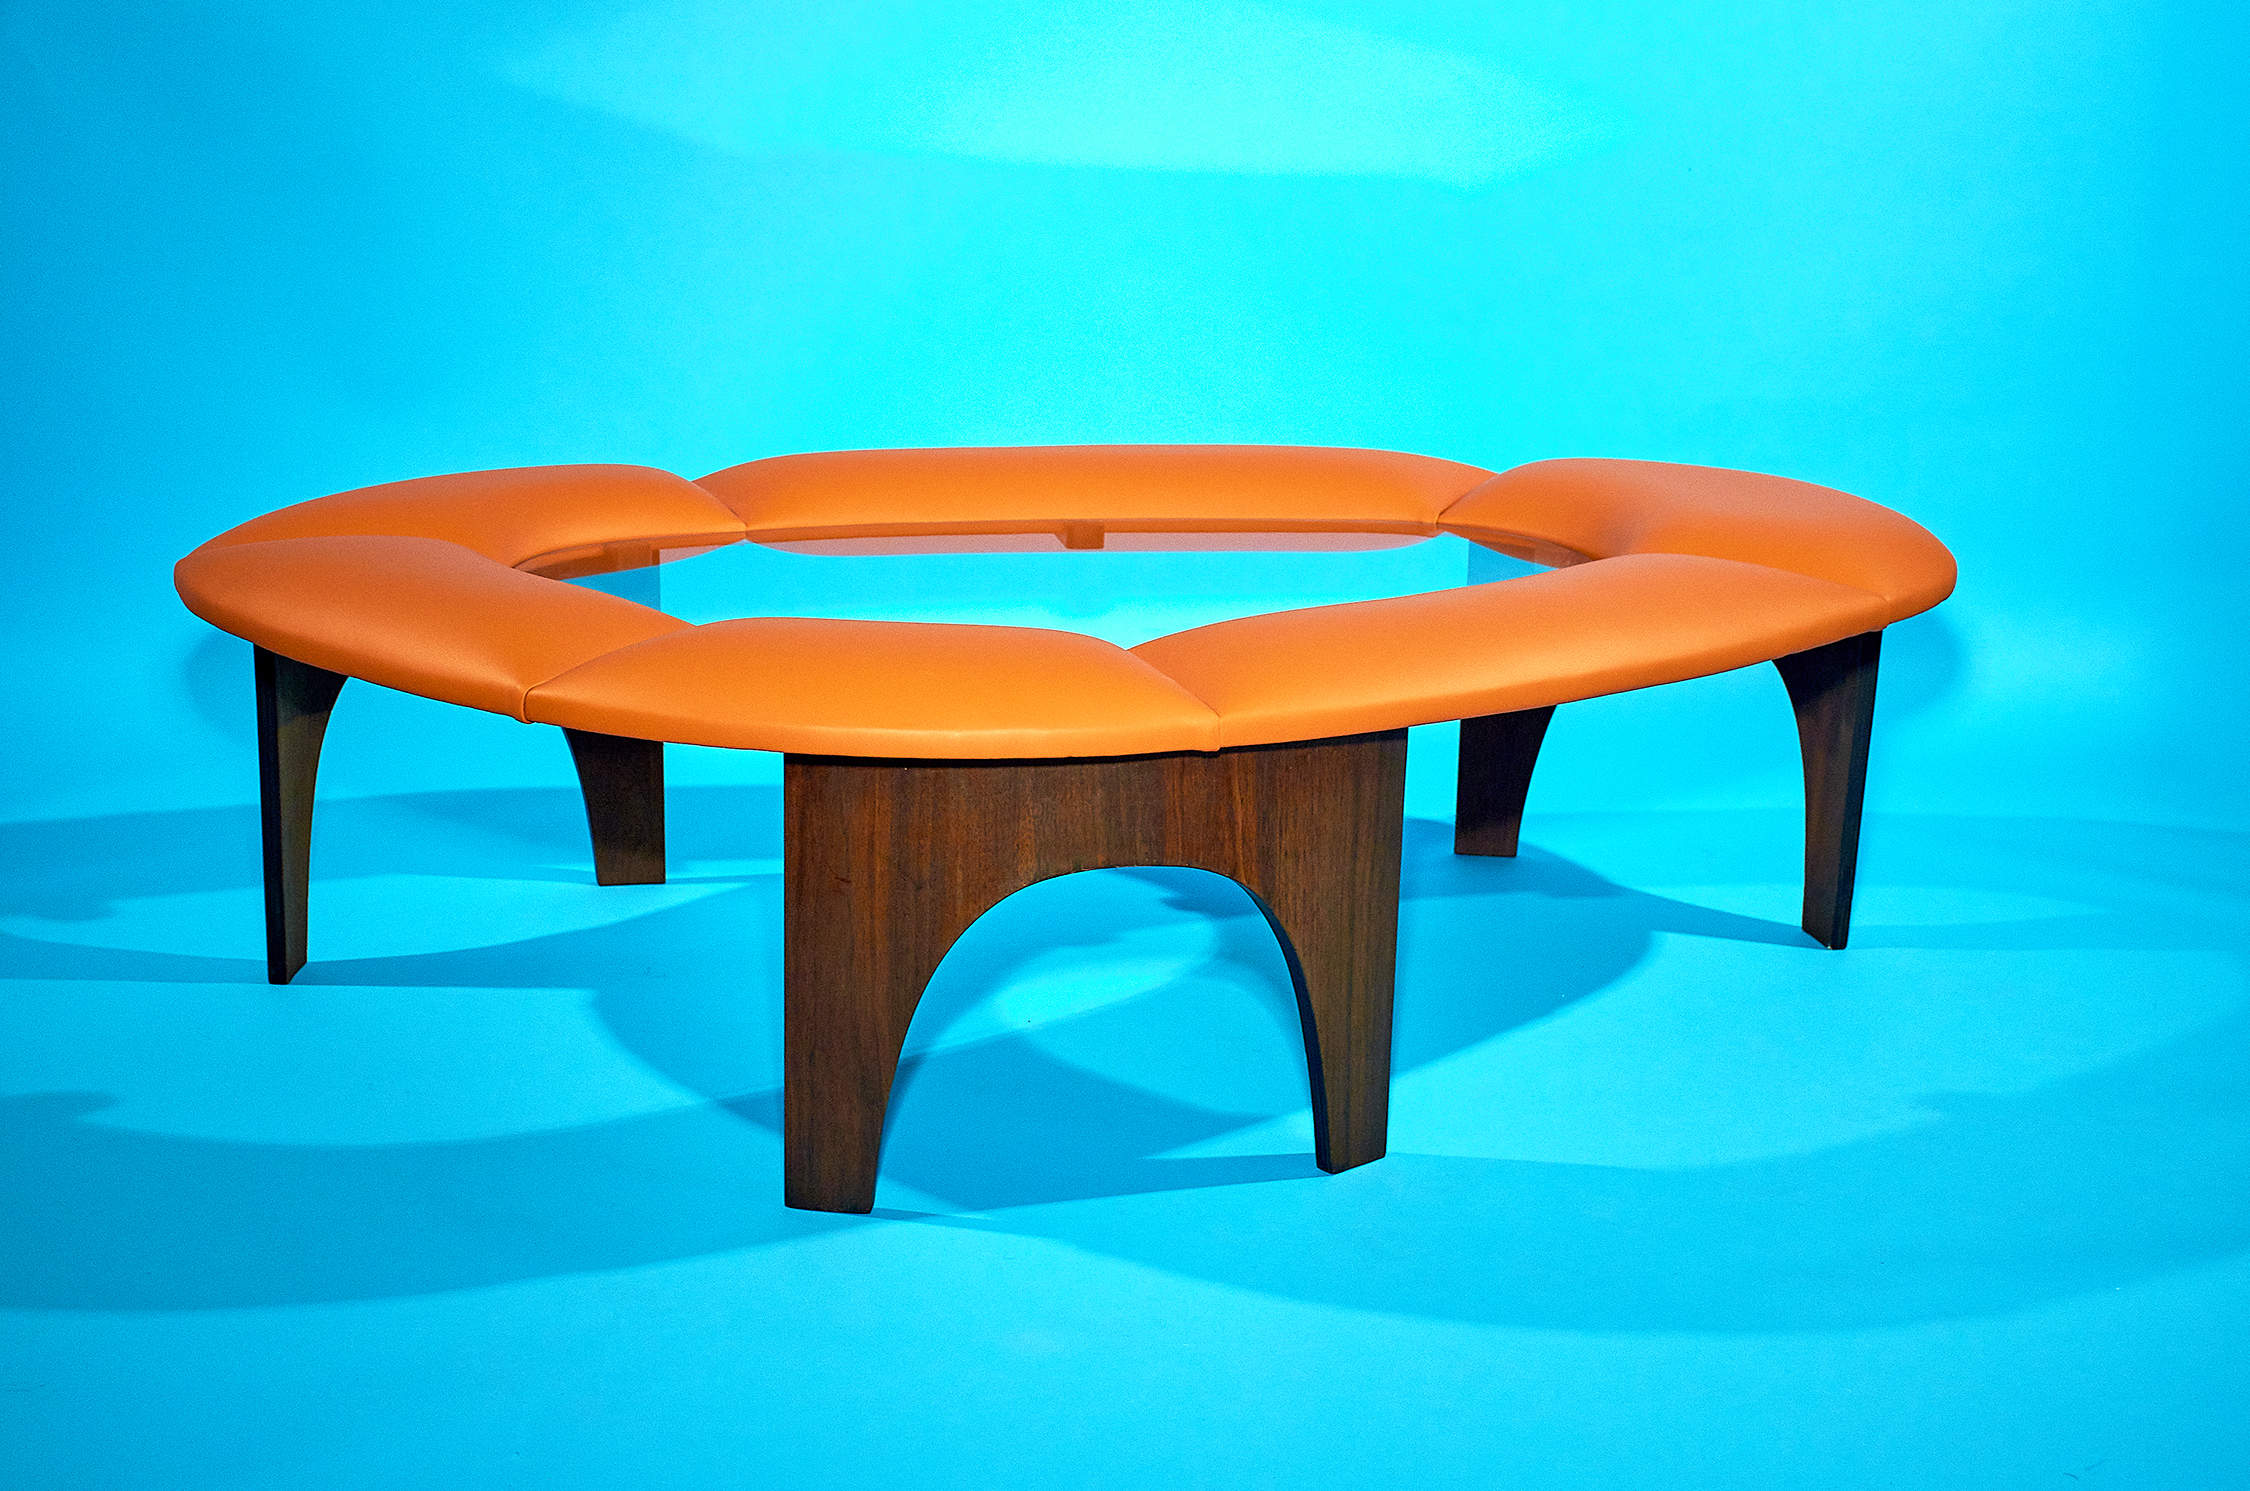 Henry Glass Intimate Island Coffee Table The Space Detroit 7.jpg